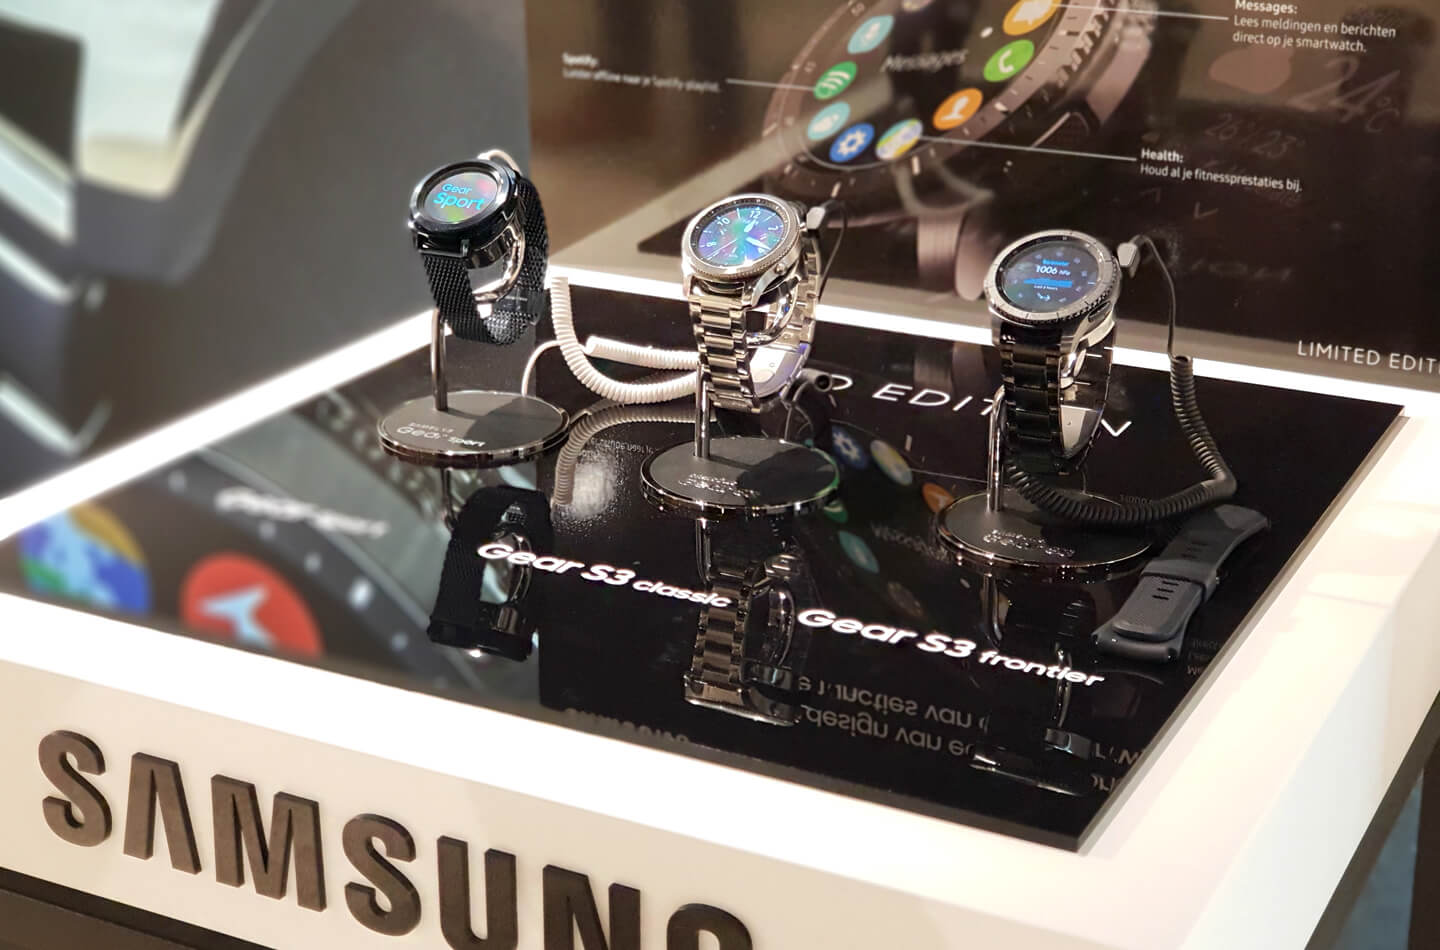 Samsung Limited Edition